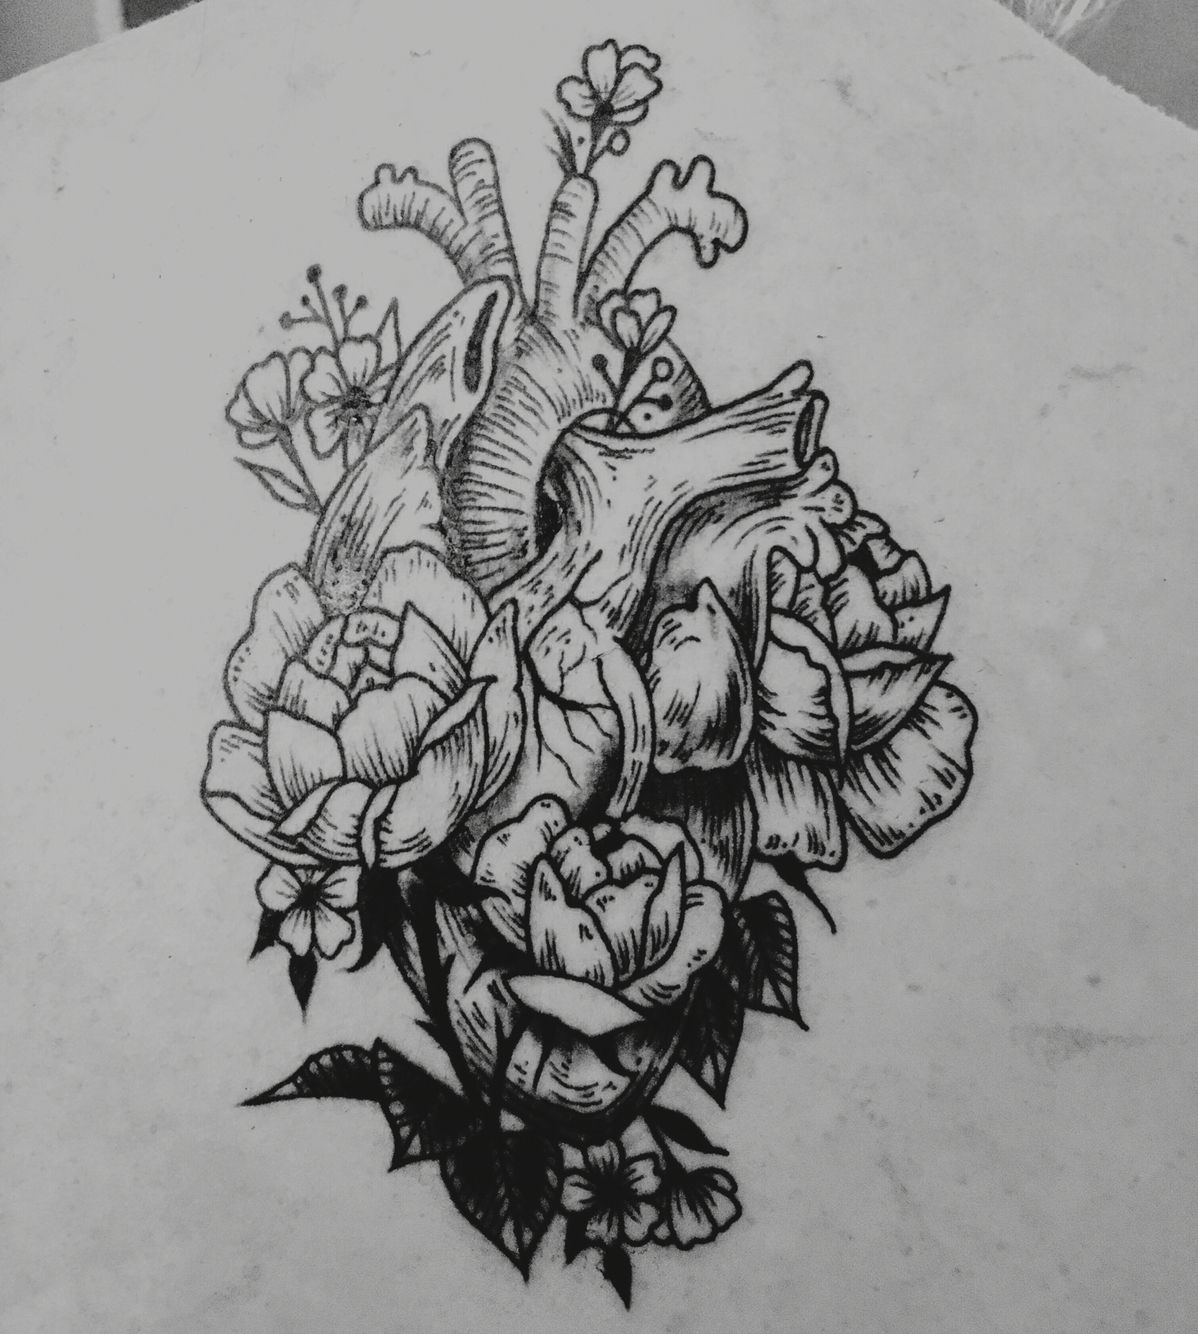 Line Drawing Tattoo Artists : Anatomical heart line art detail tattoo with floral